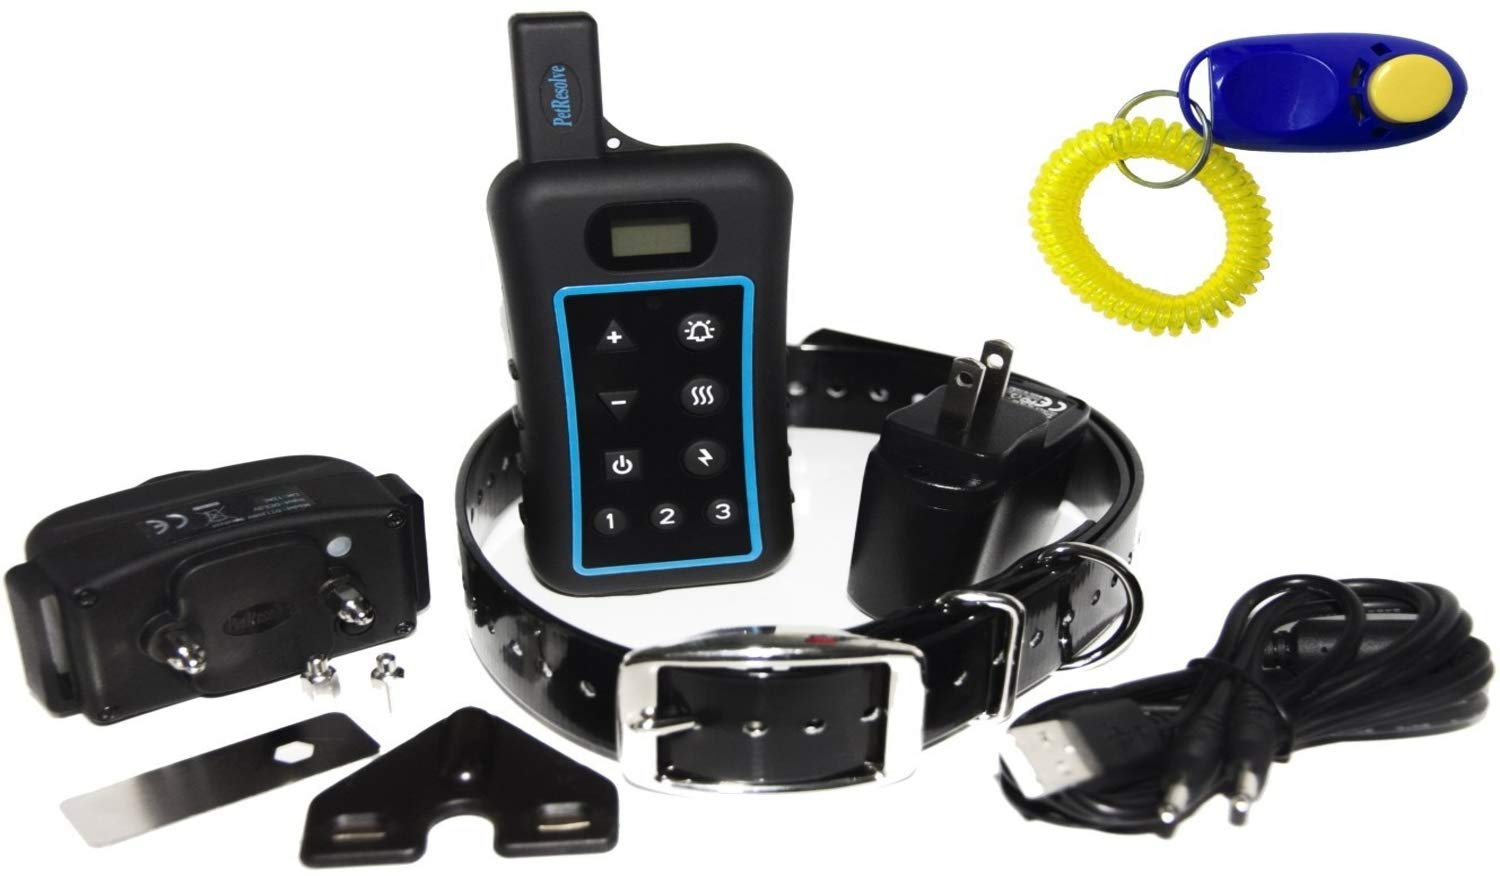 Pet Resolve Dog Training Collar with Remote - Trains up to 3 Dogs at Once - Shock, Vibration and Beep Modes - Up to 3/4 Mile Range - Waterproof Electric E Collar by Pet Resolve